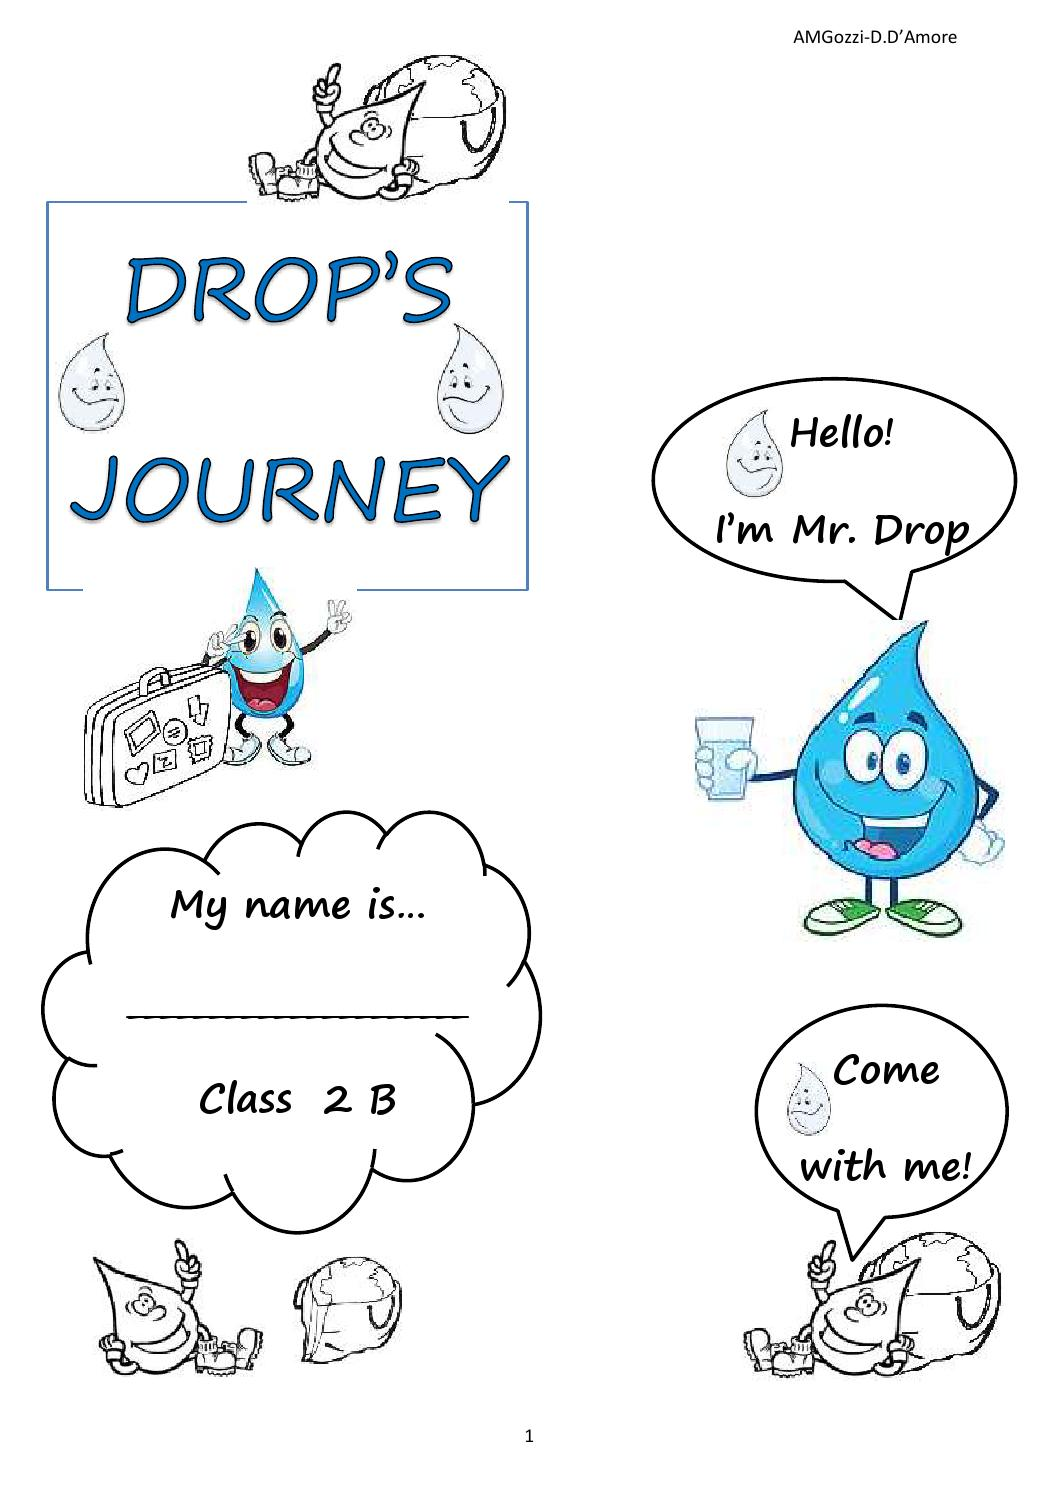 Favoloso Lapbook water cycle primaria casteldario by Anna Maria G. - issuu CM23